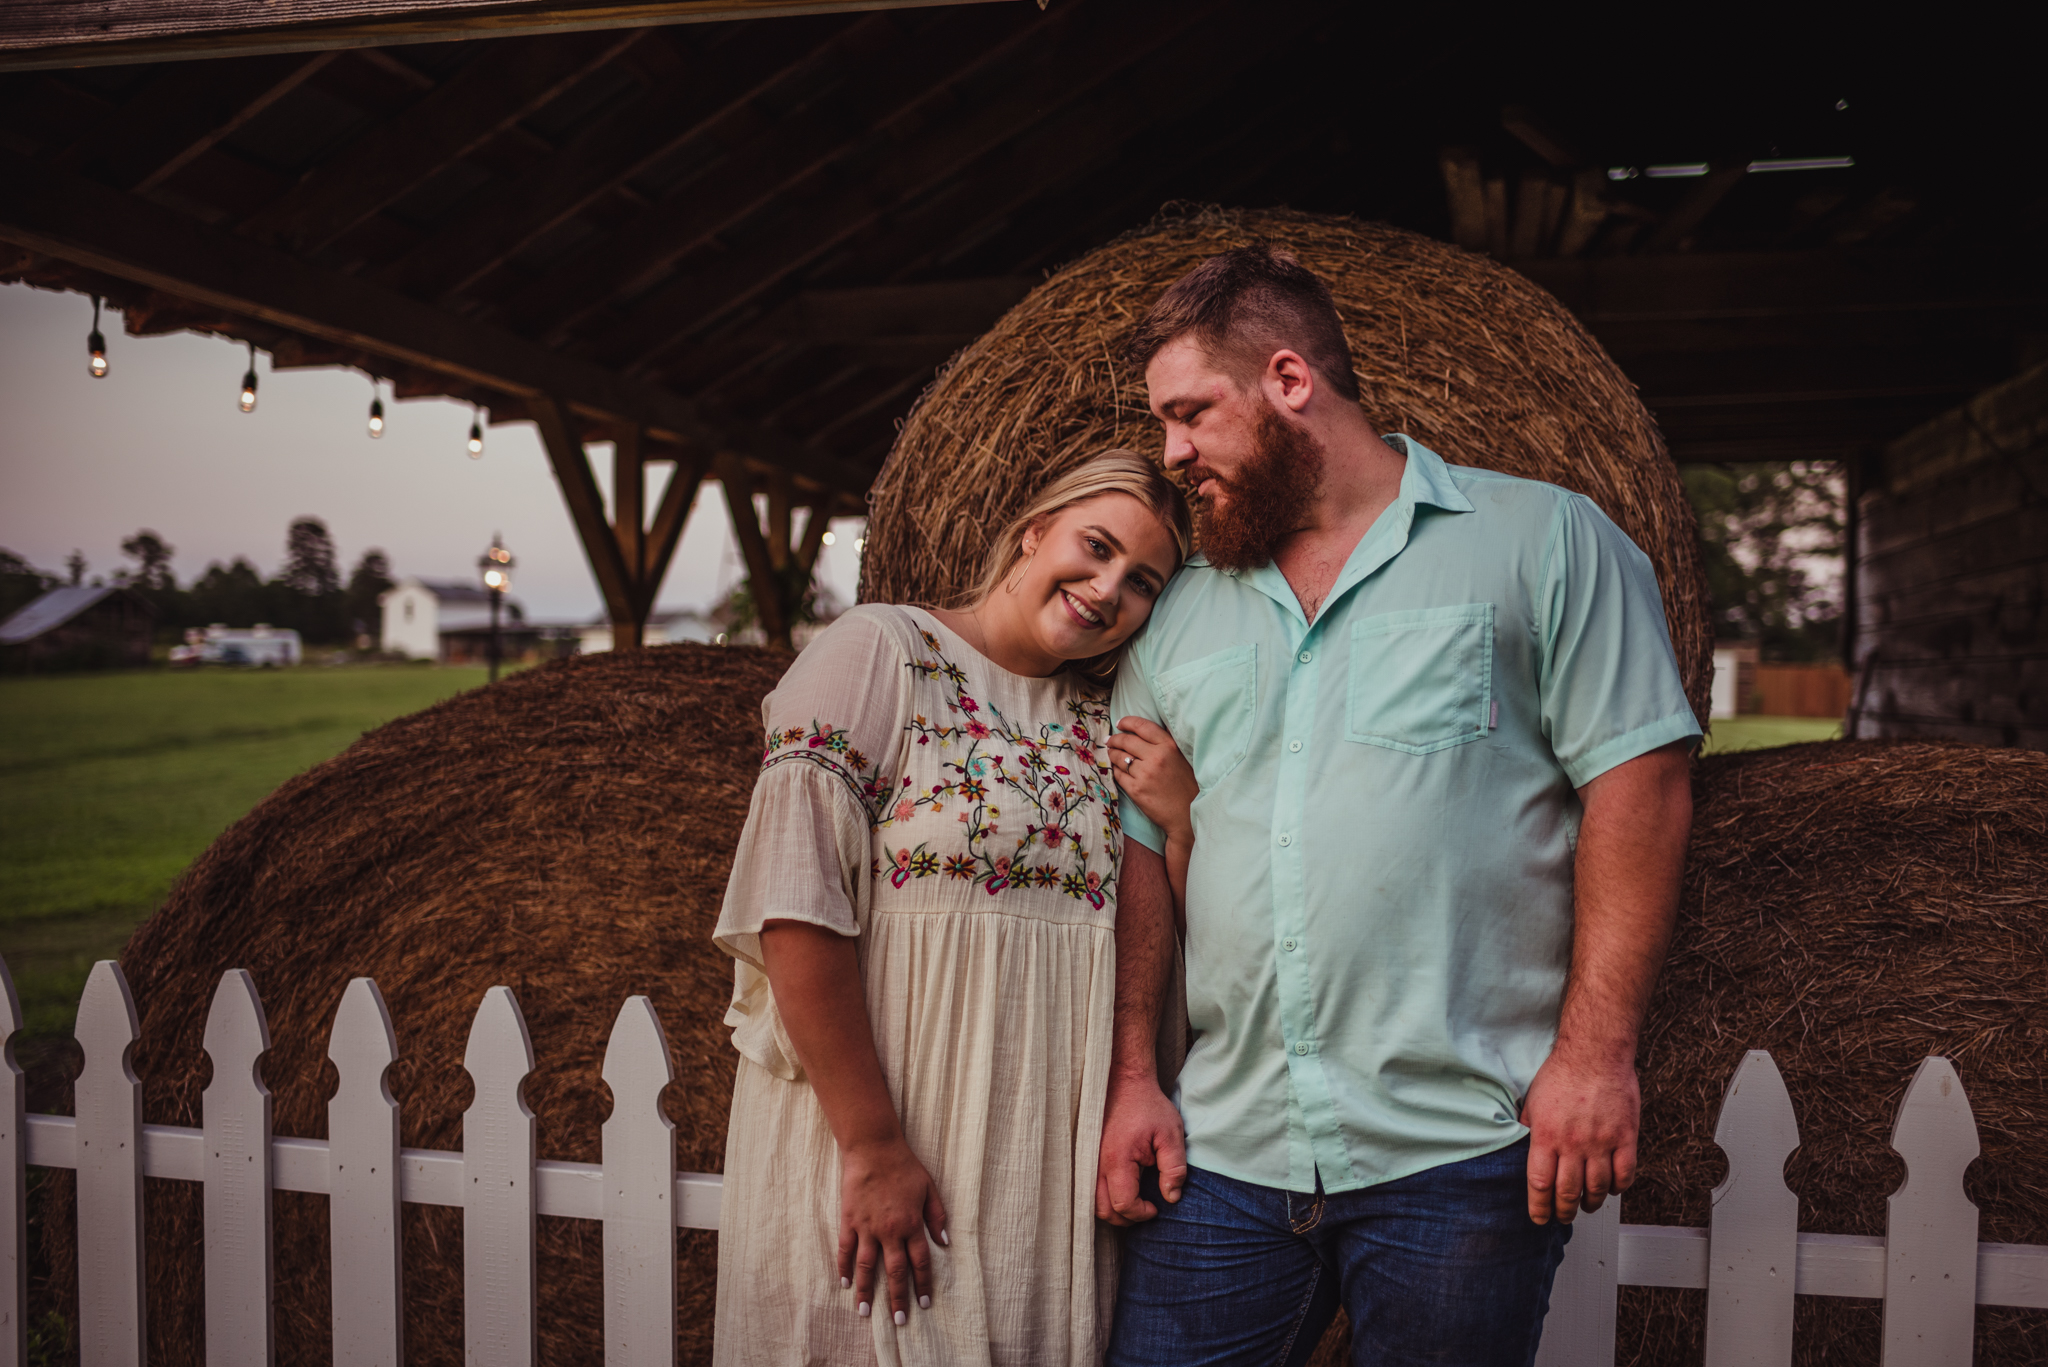 The future bride and groom snuggle up together by the hay bales at their wedding ceremony site for their engagement pictures with Rose Trail Images.